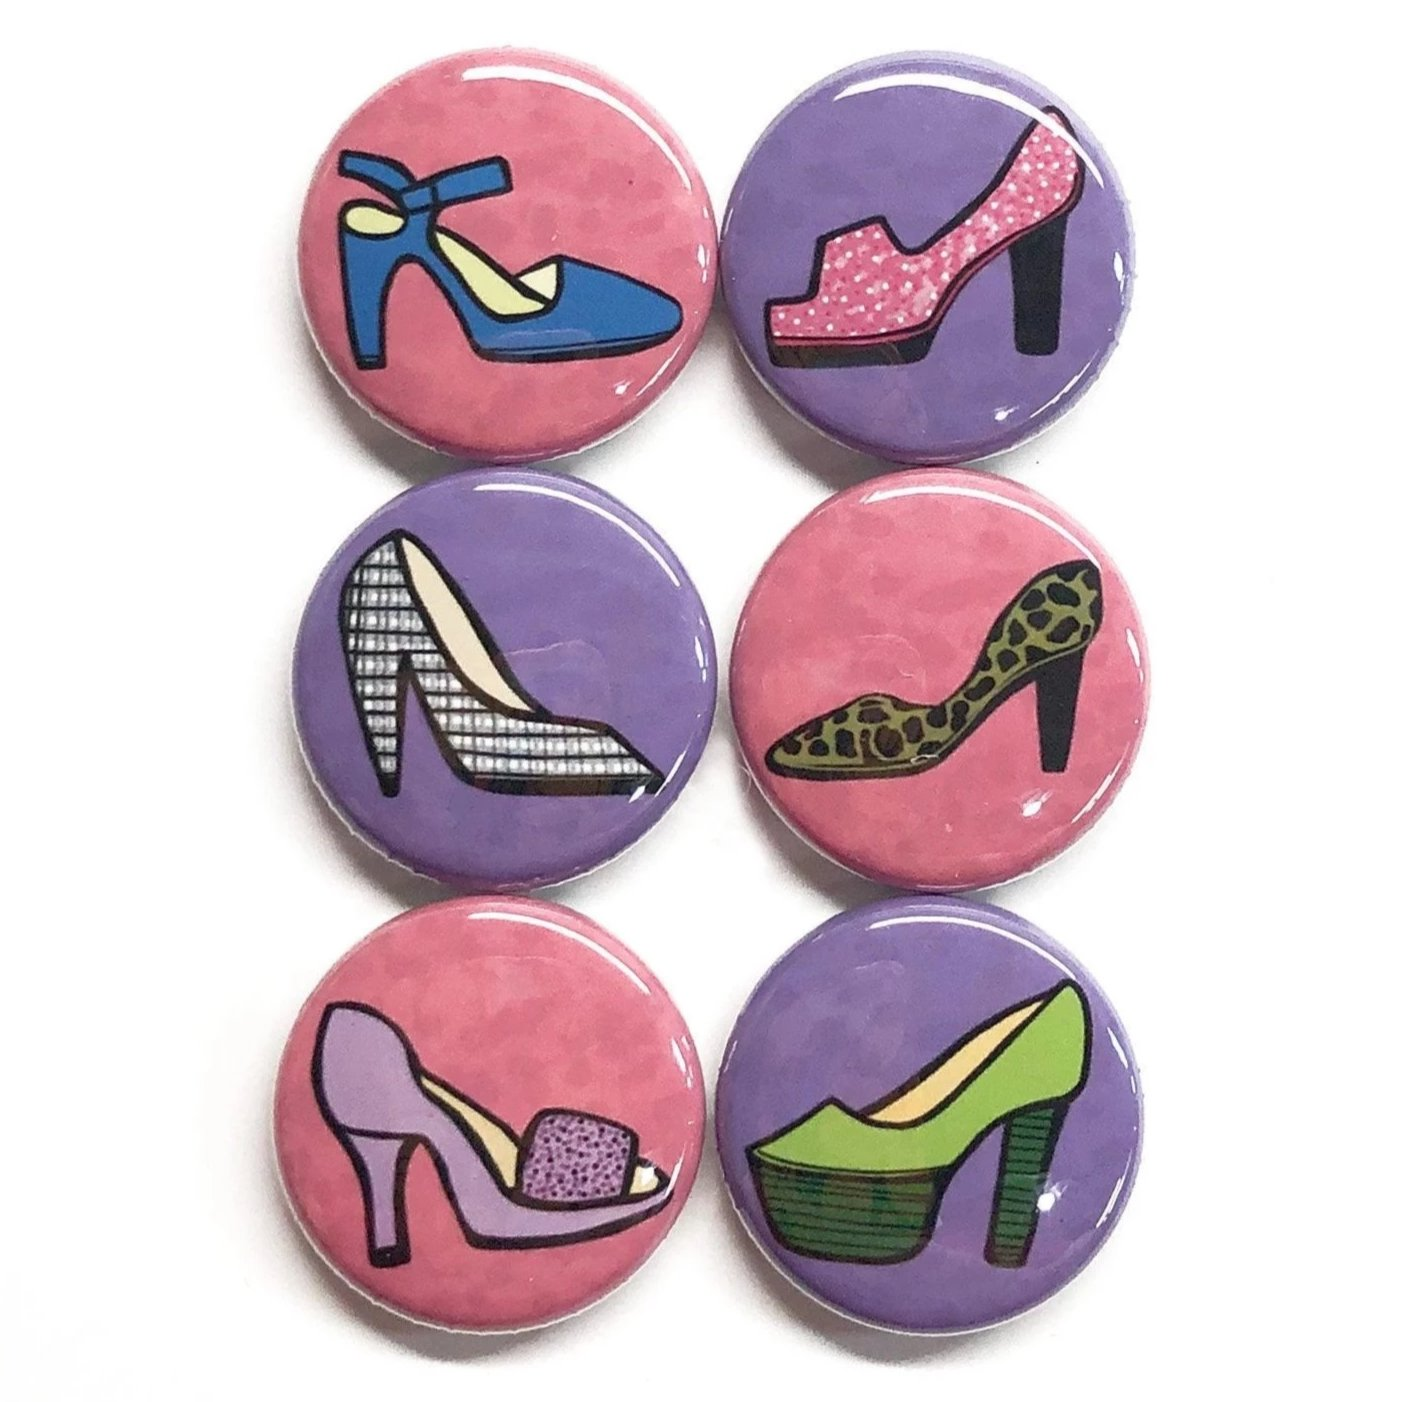 Shoe Magnet or Pin Set - High Heel Fridge Magnets or Pinback Buttons